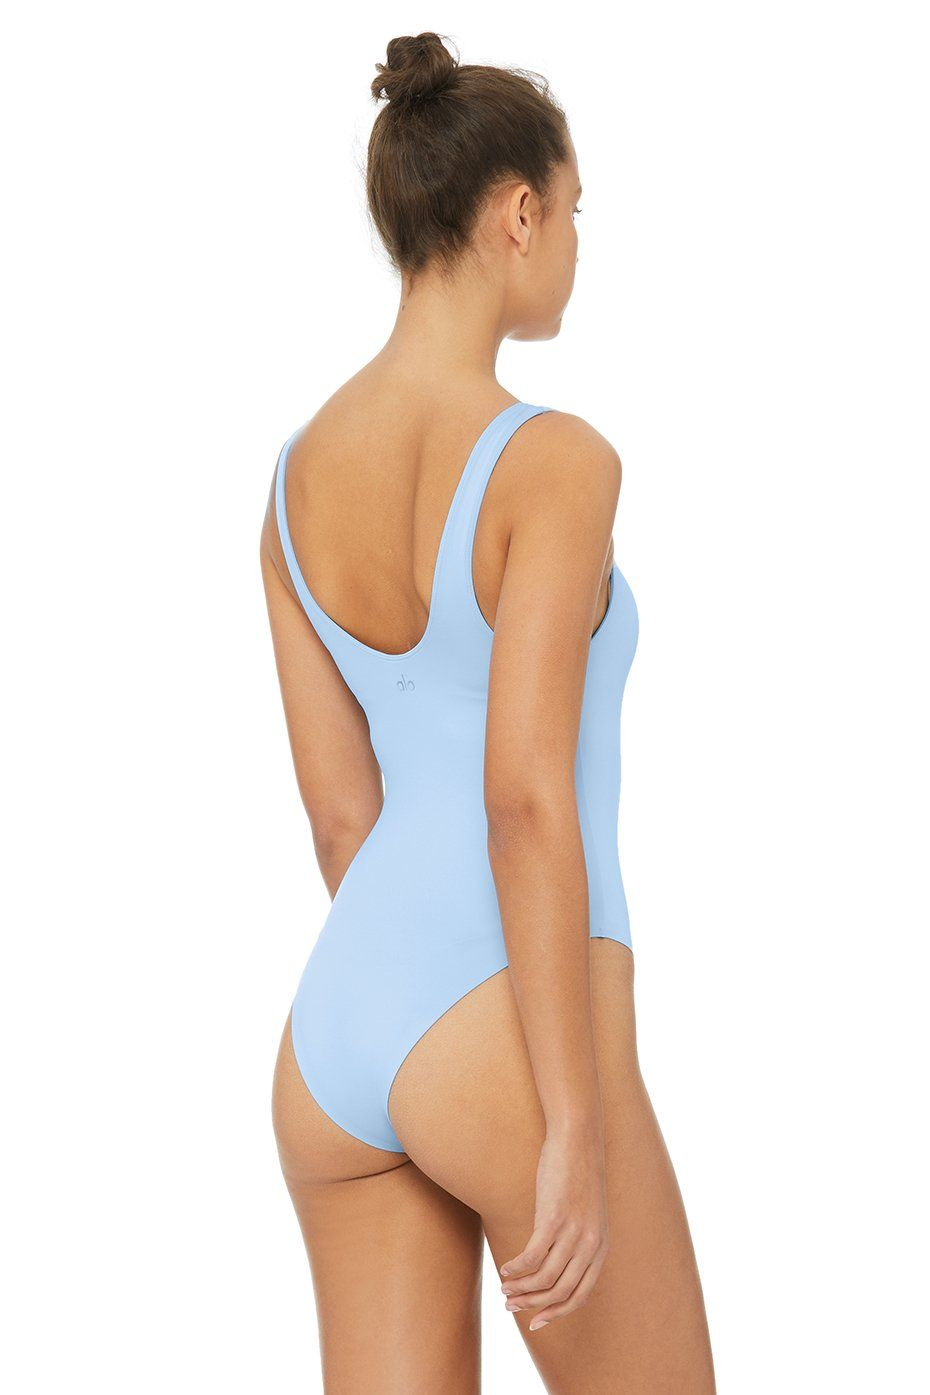 Limited-Edition Exclusive Goddess Leotard   Gym wear for